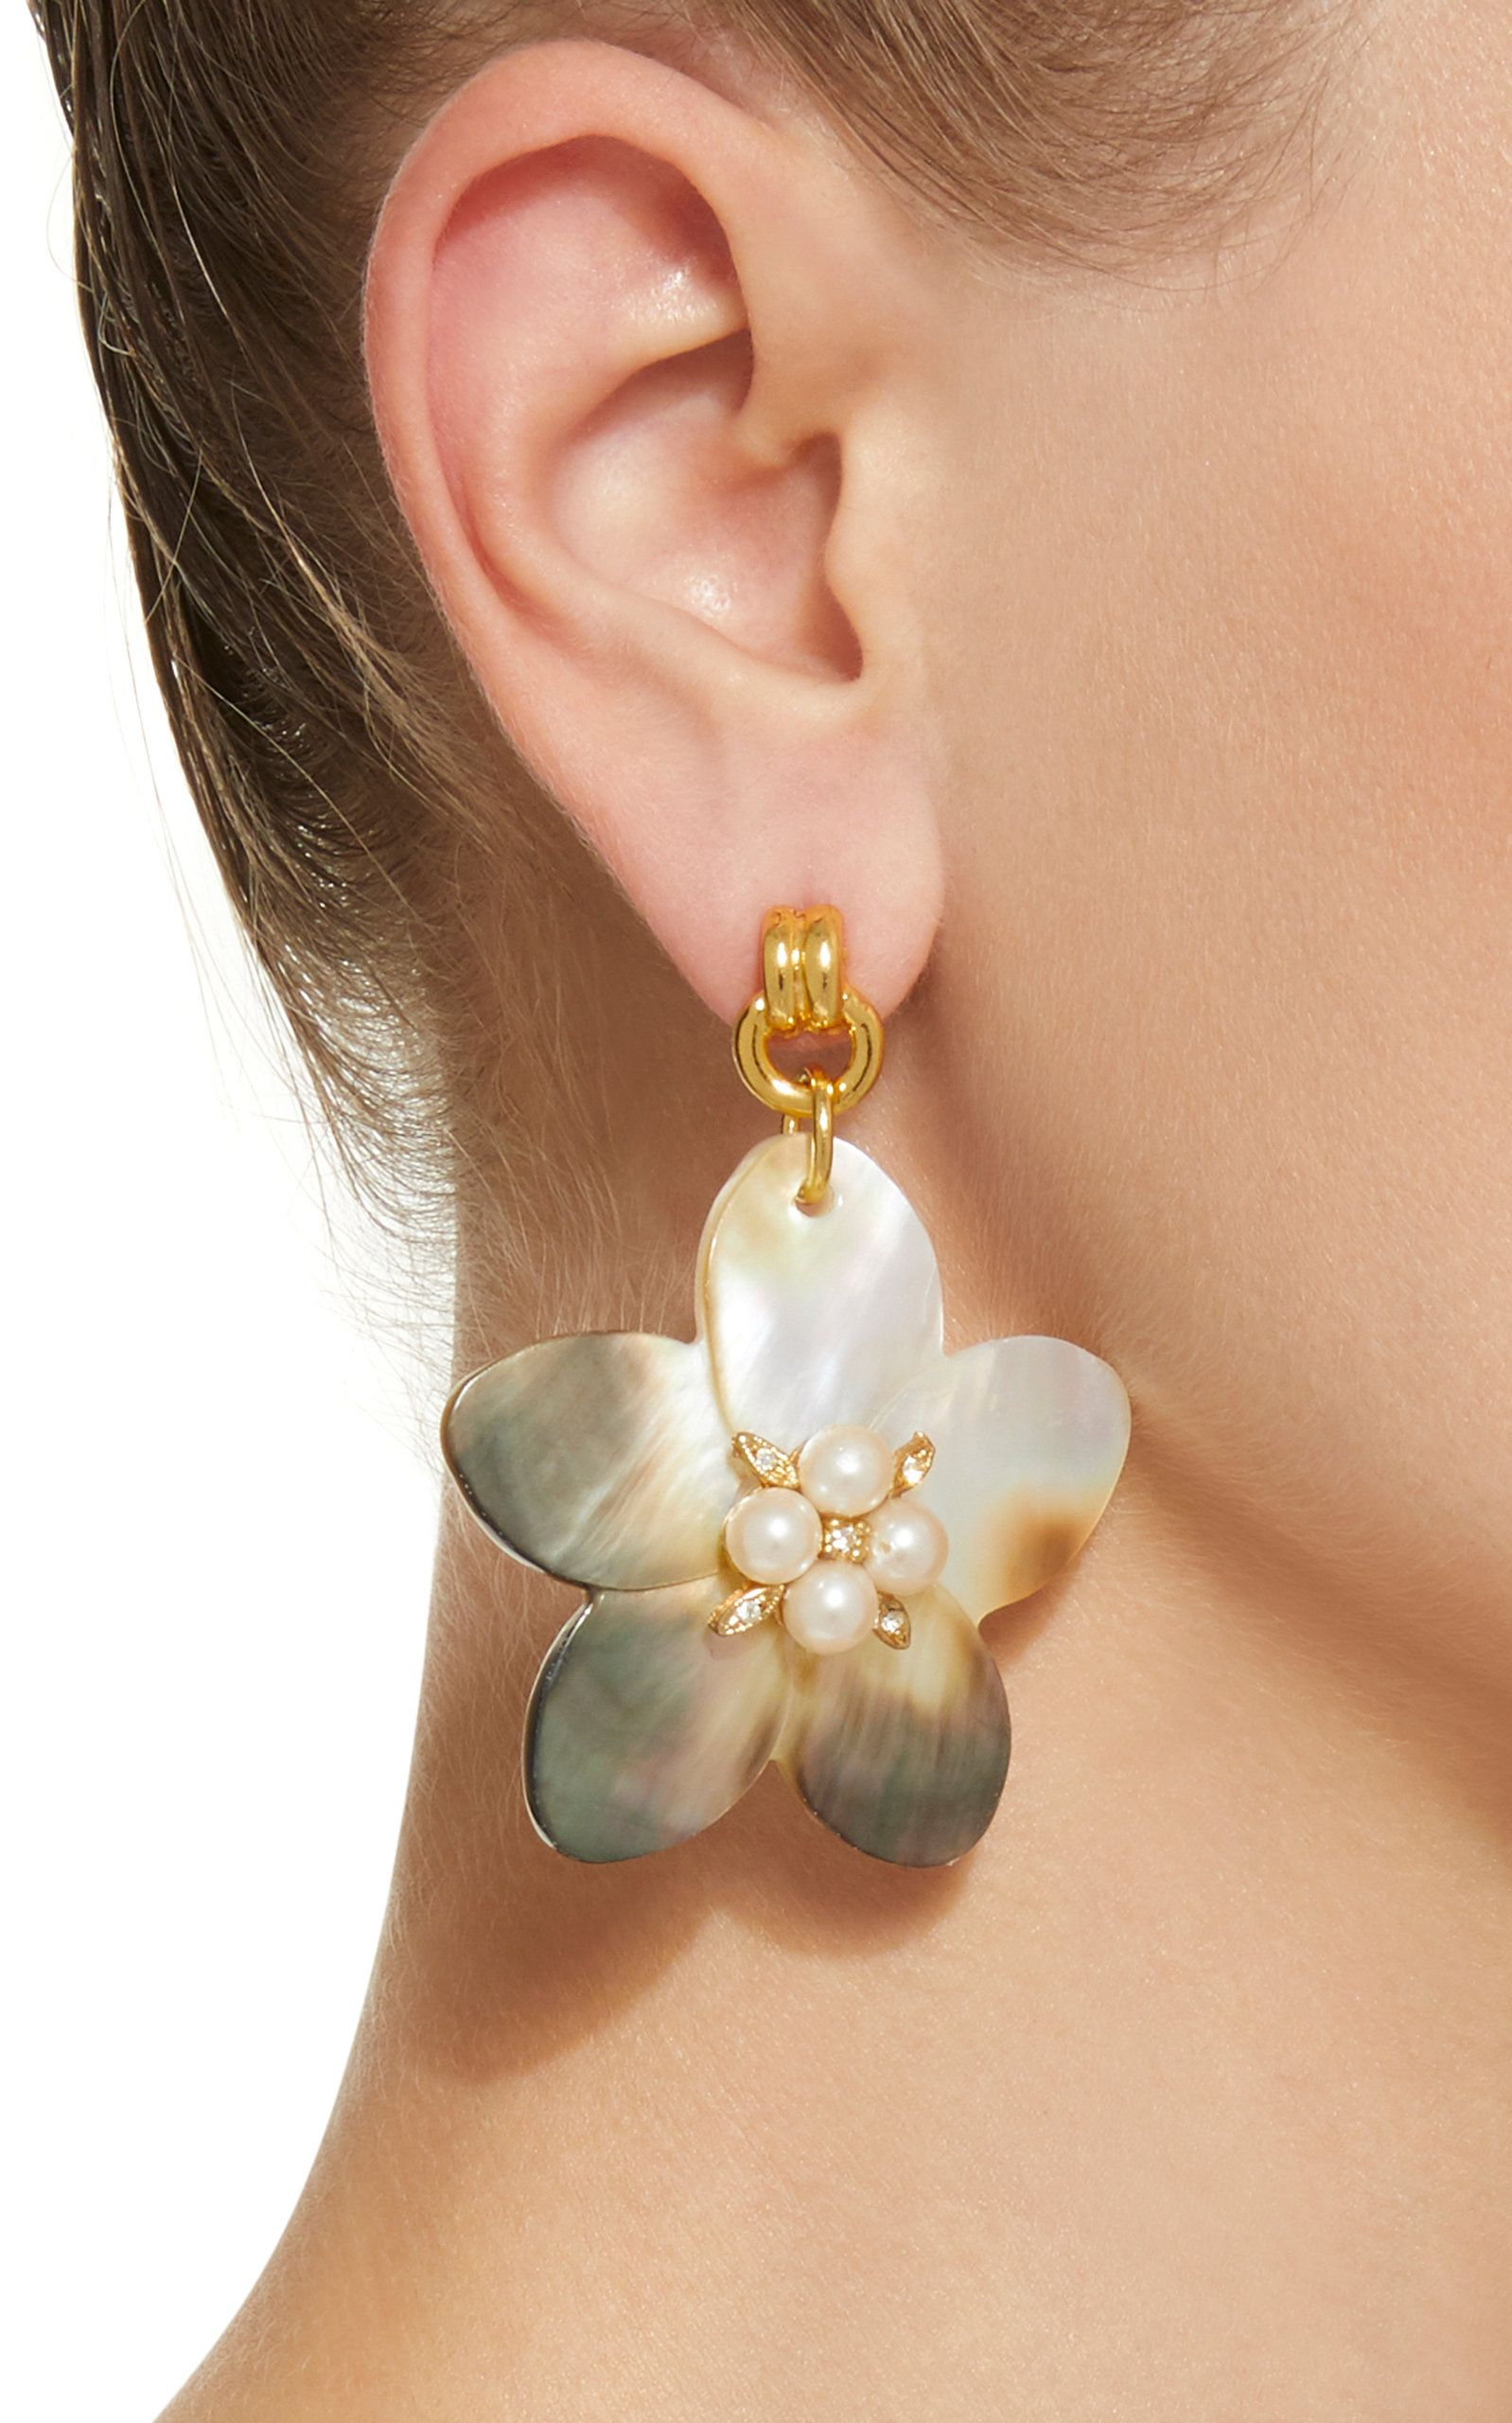 Muse Mother Of Pearl And Crystal Earrings By Brinker Eliza Moda Operandi Crystal Earrings Earrings Turquoise Earrings